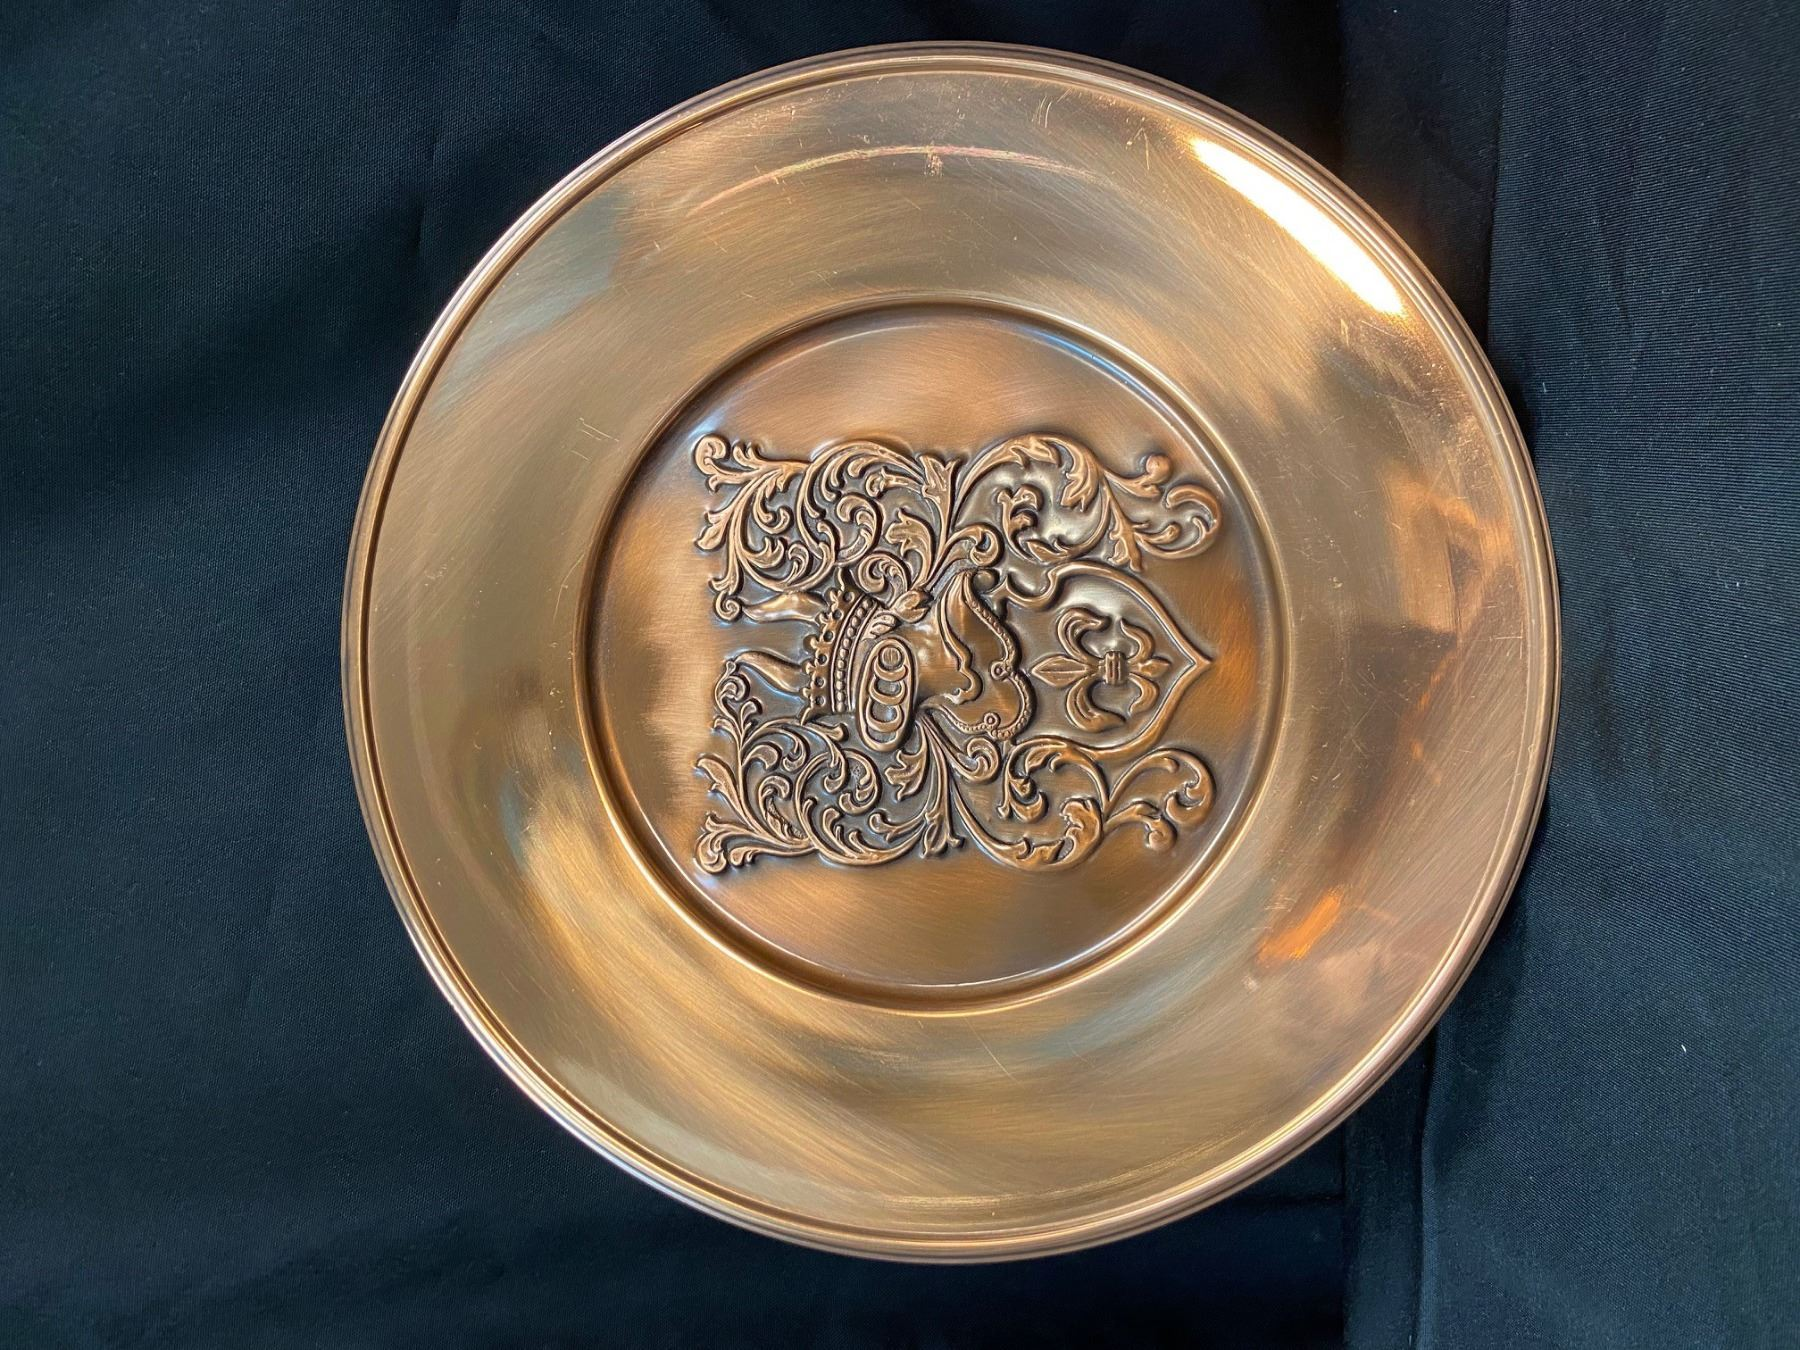 Copper Plate - Code of Arms Plate